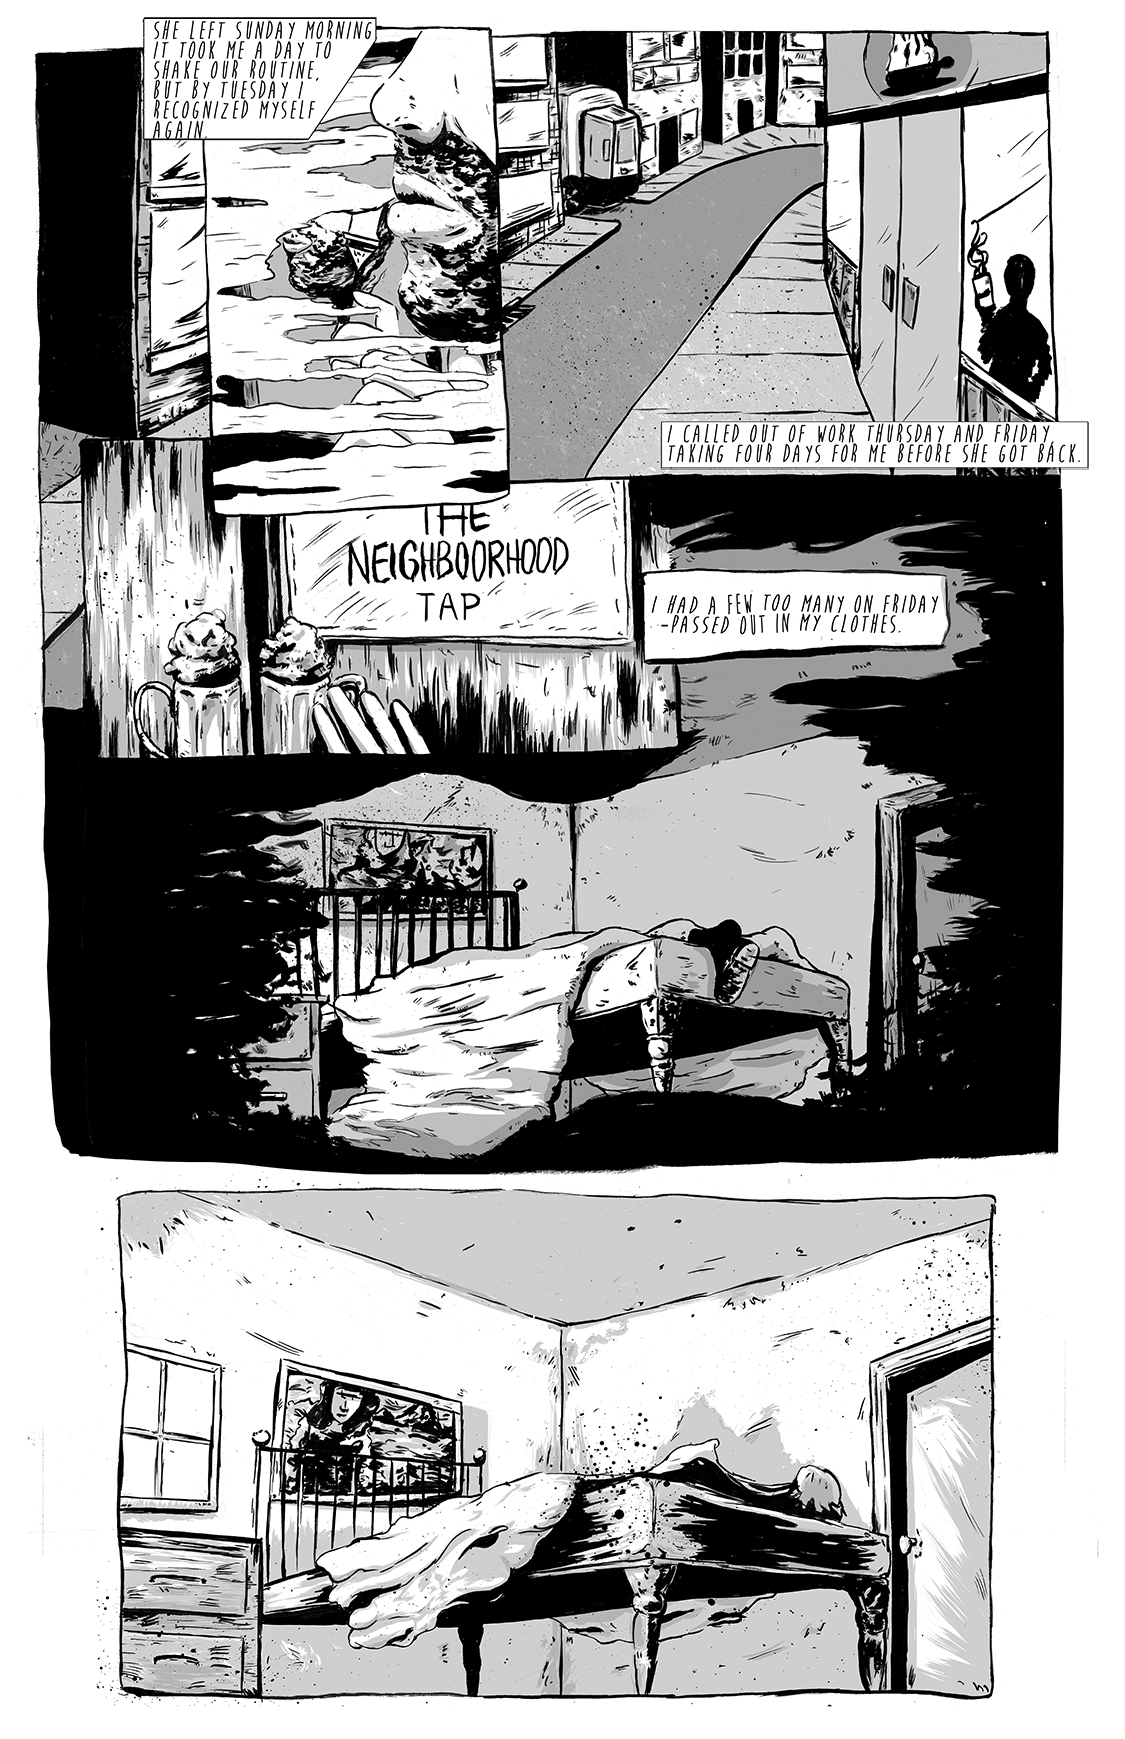 Eight Days Alone, page 4, by Sam Costello and Matthew Goik